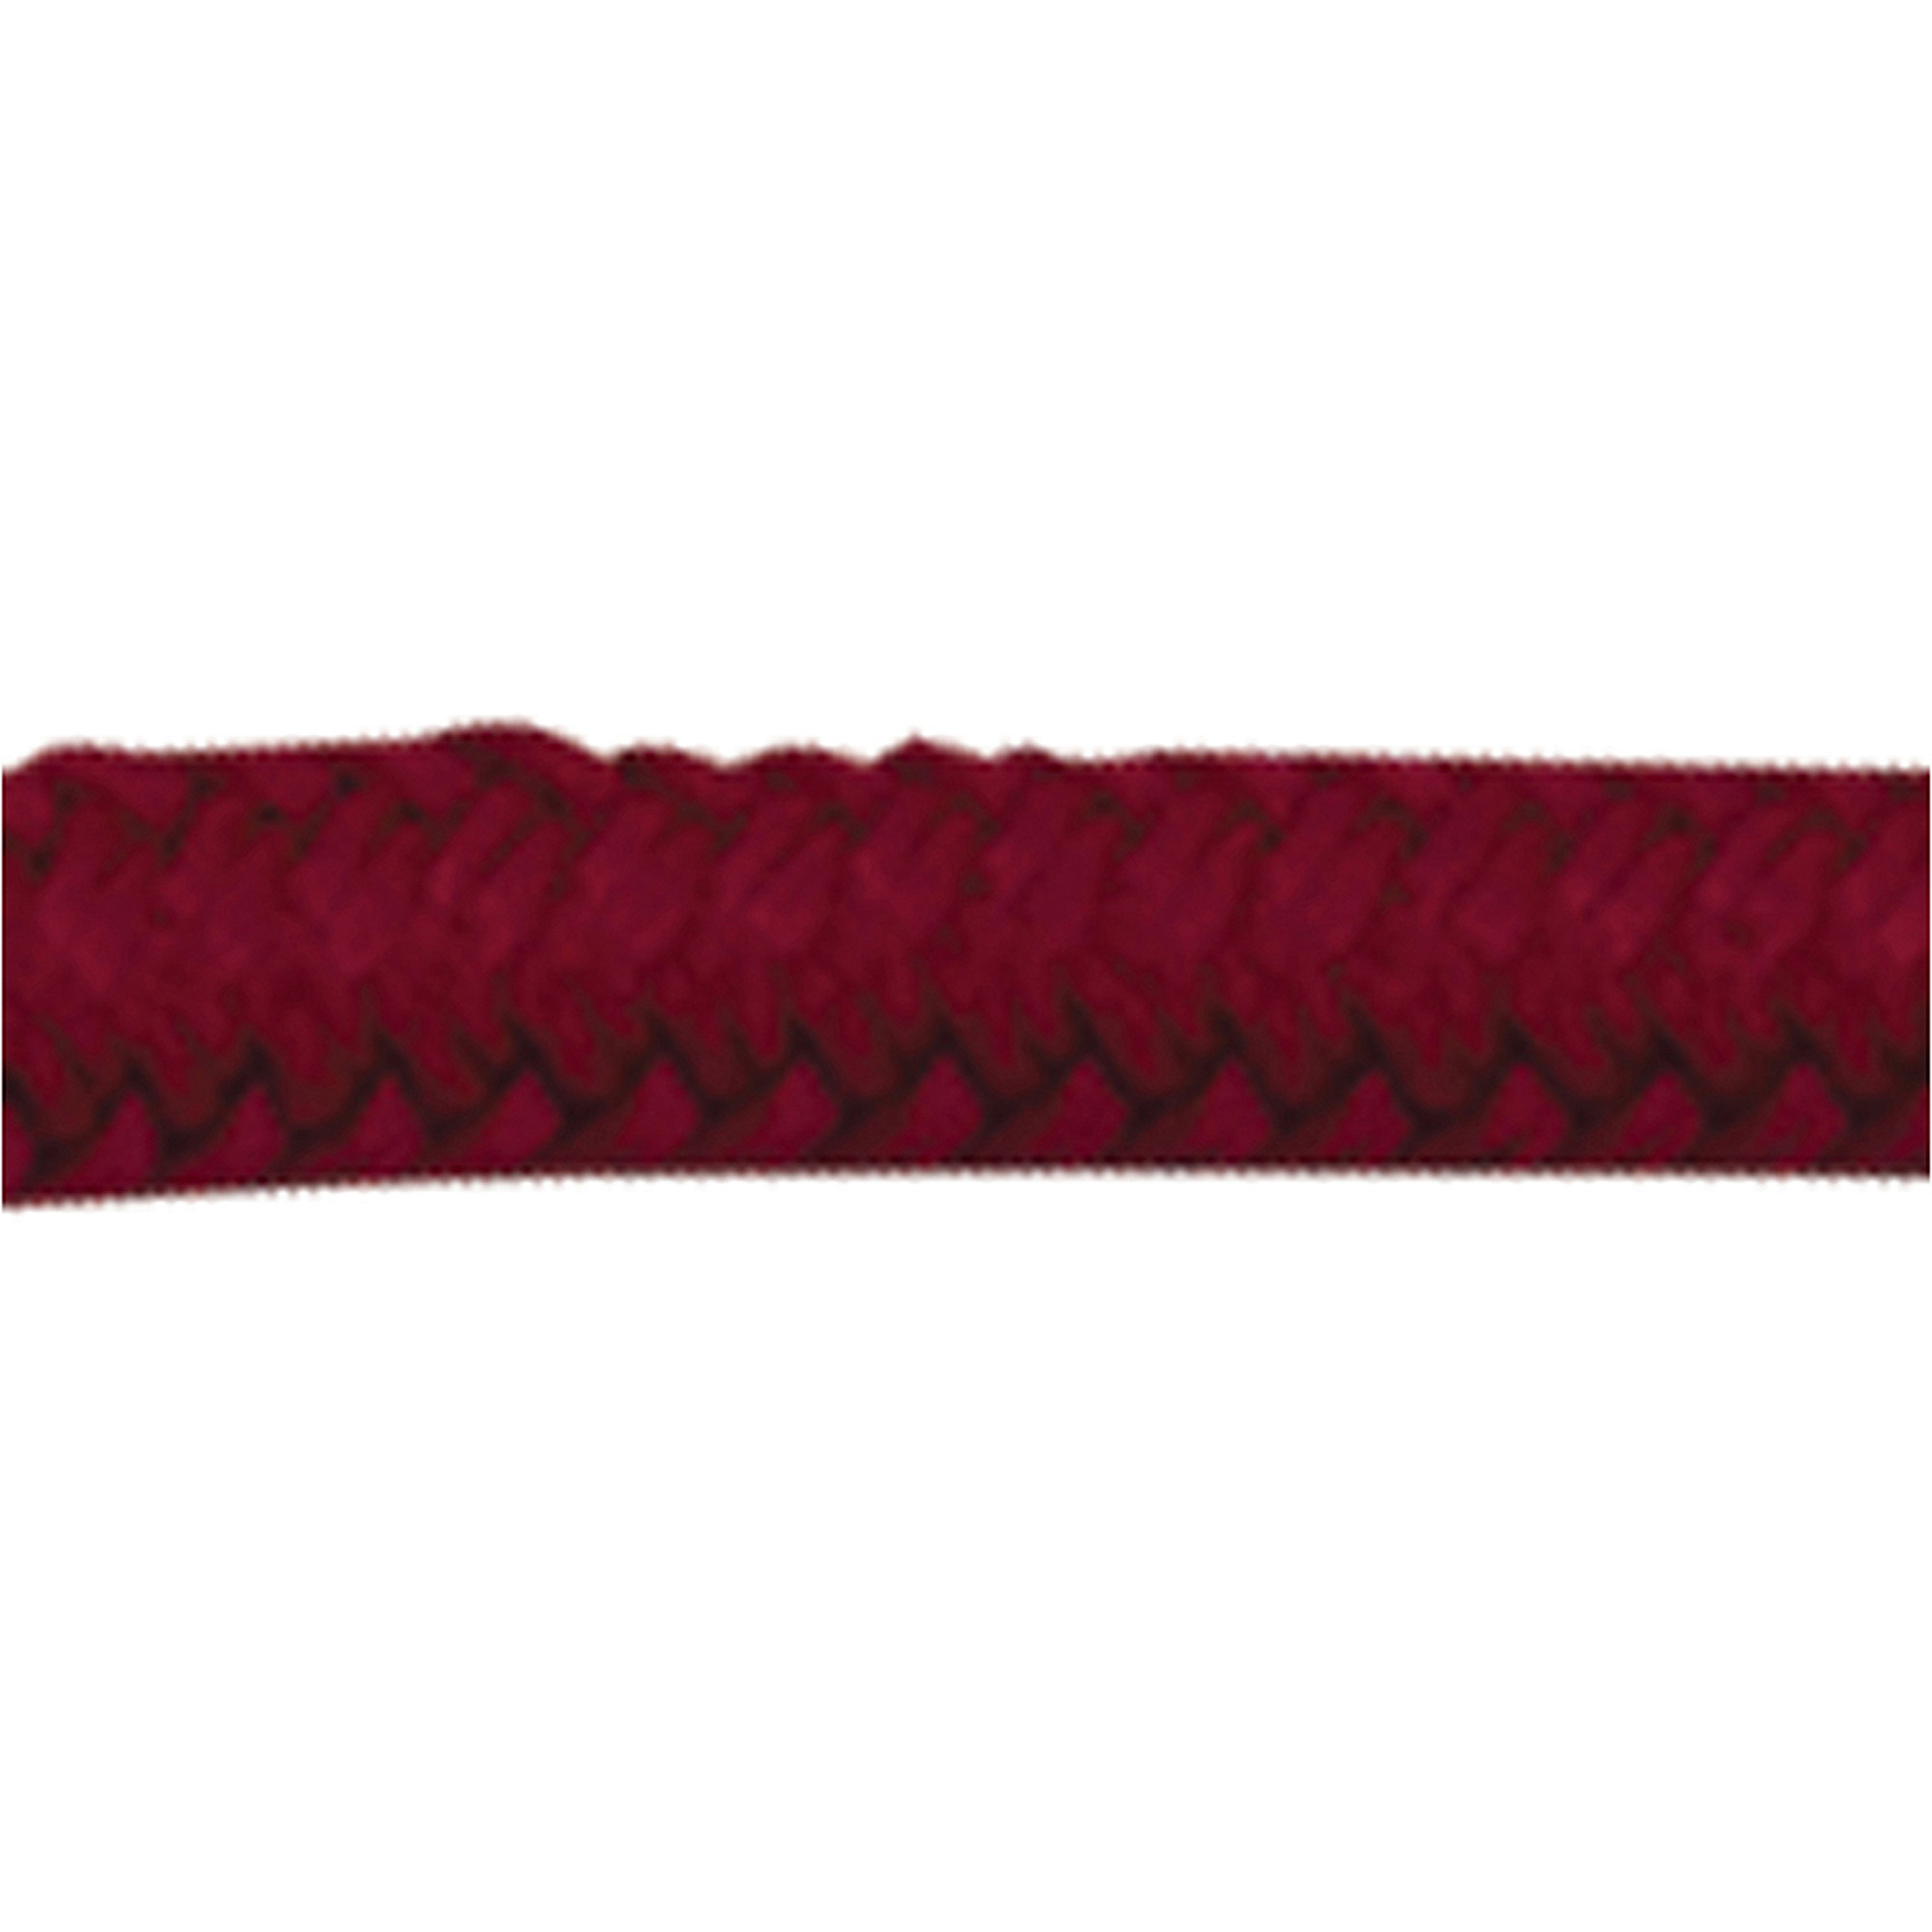 "Sea Dog Dock Line, Double Braided Nylon, 1 2"" x 15', Red by Sea Dog"